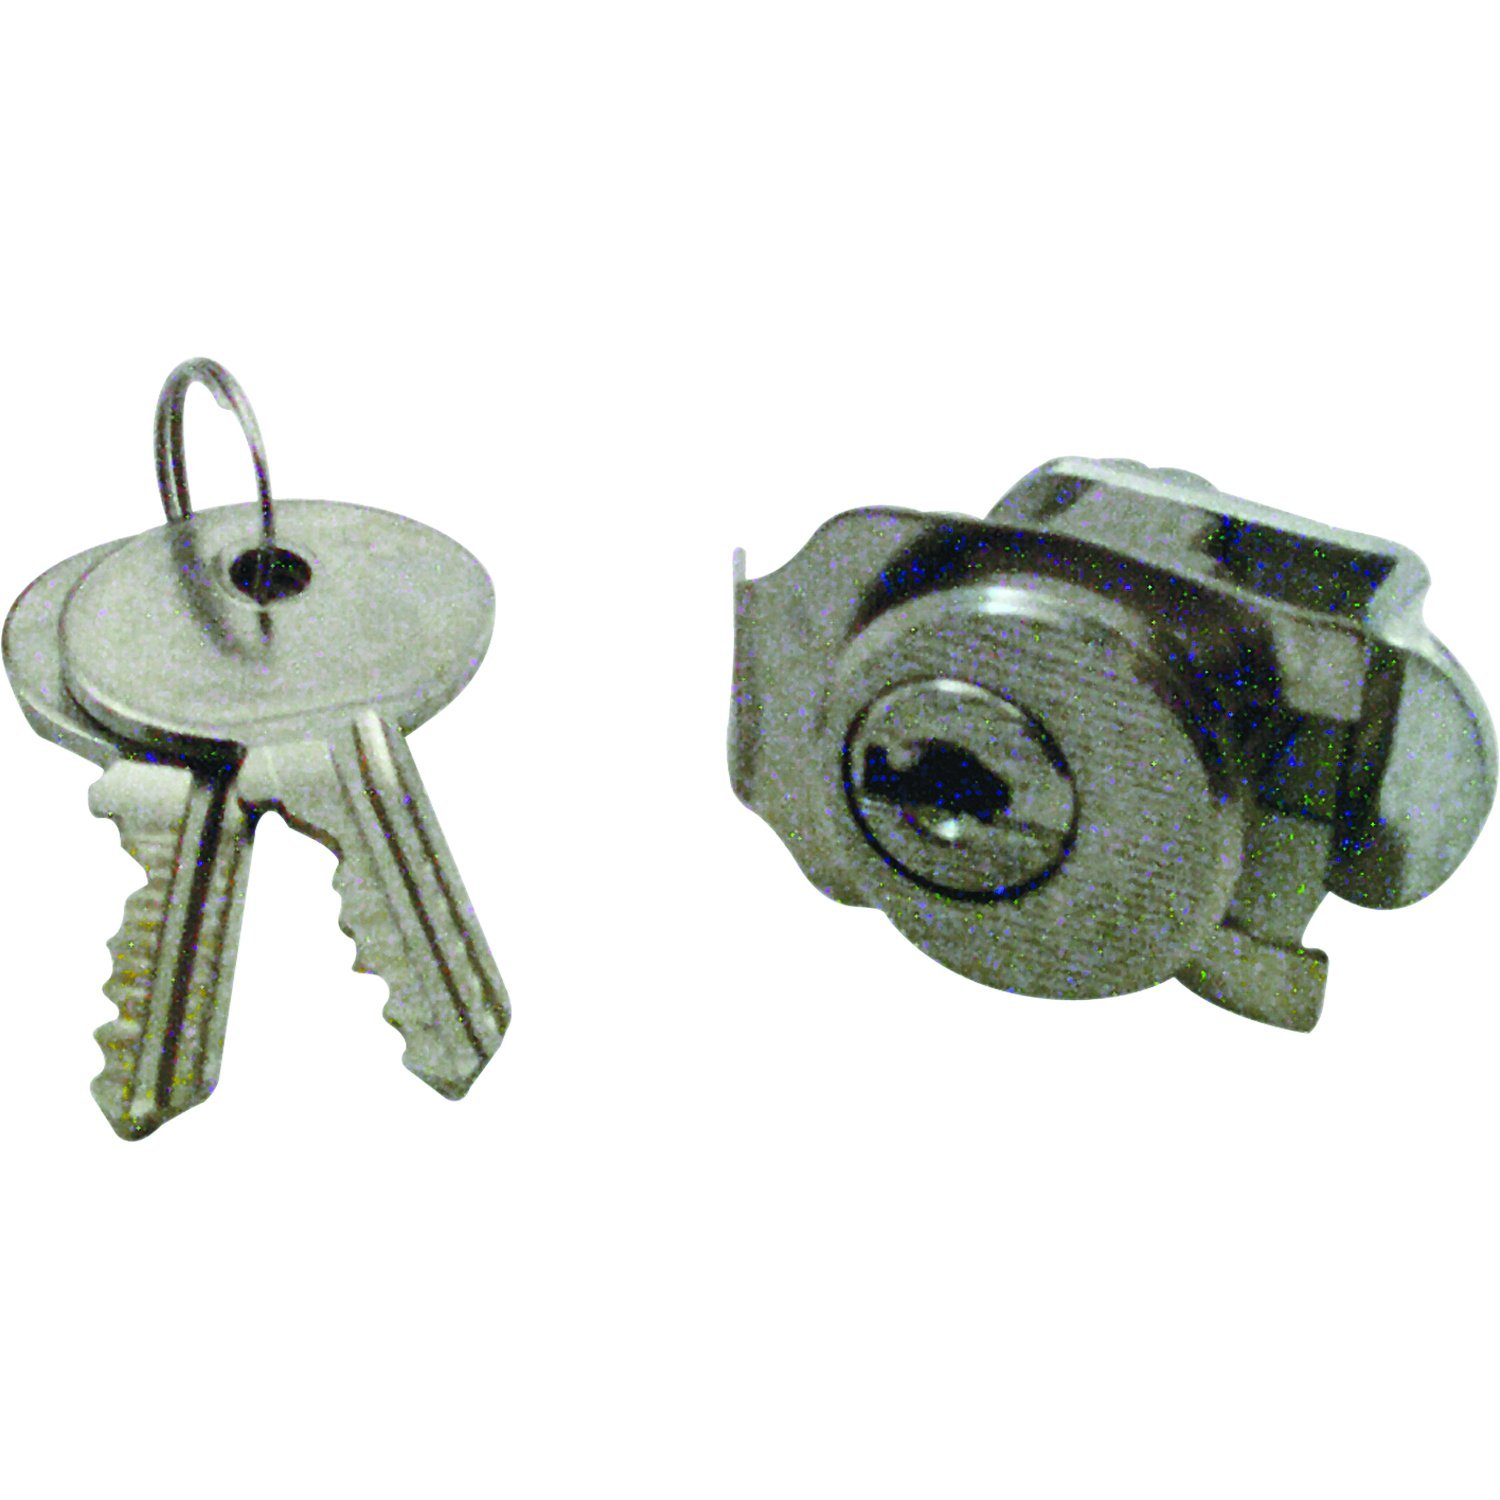 Pack of 1 Prime-Line Products Prime-Line MP4130 Mail Box Lock Nickel Plated